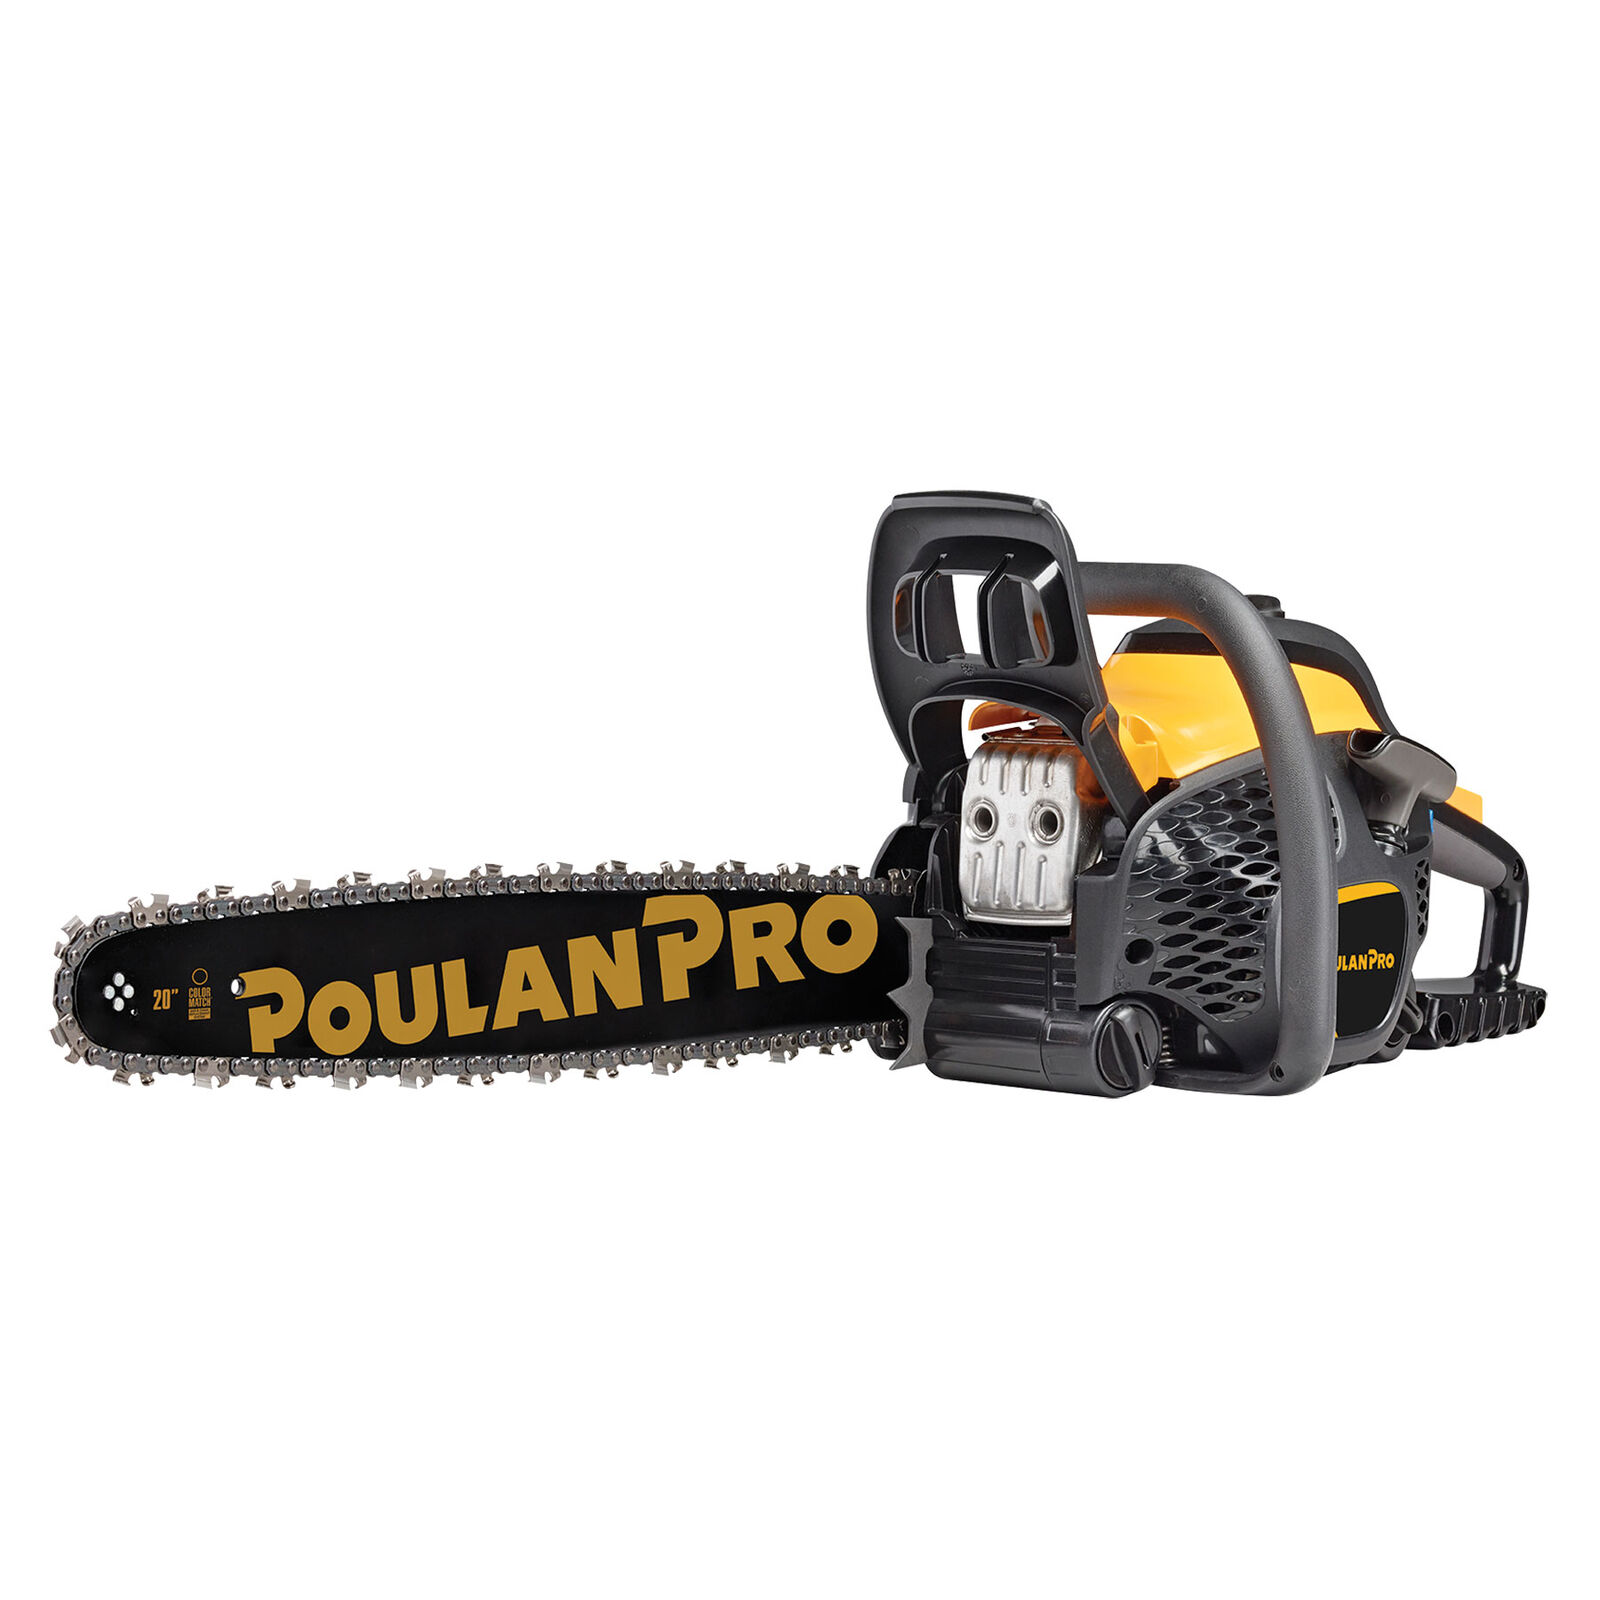 Poulan pro chainsaw ebay poulan pro ppr5020 brc 20 bar 50cc 2 cycle gas chainsaw certified refurbished keyboard keysfo Images